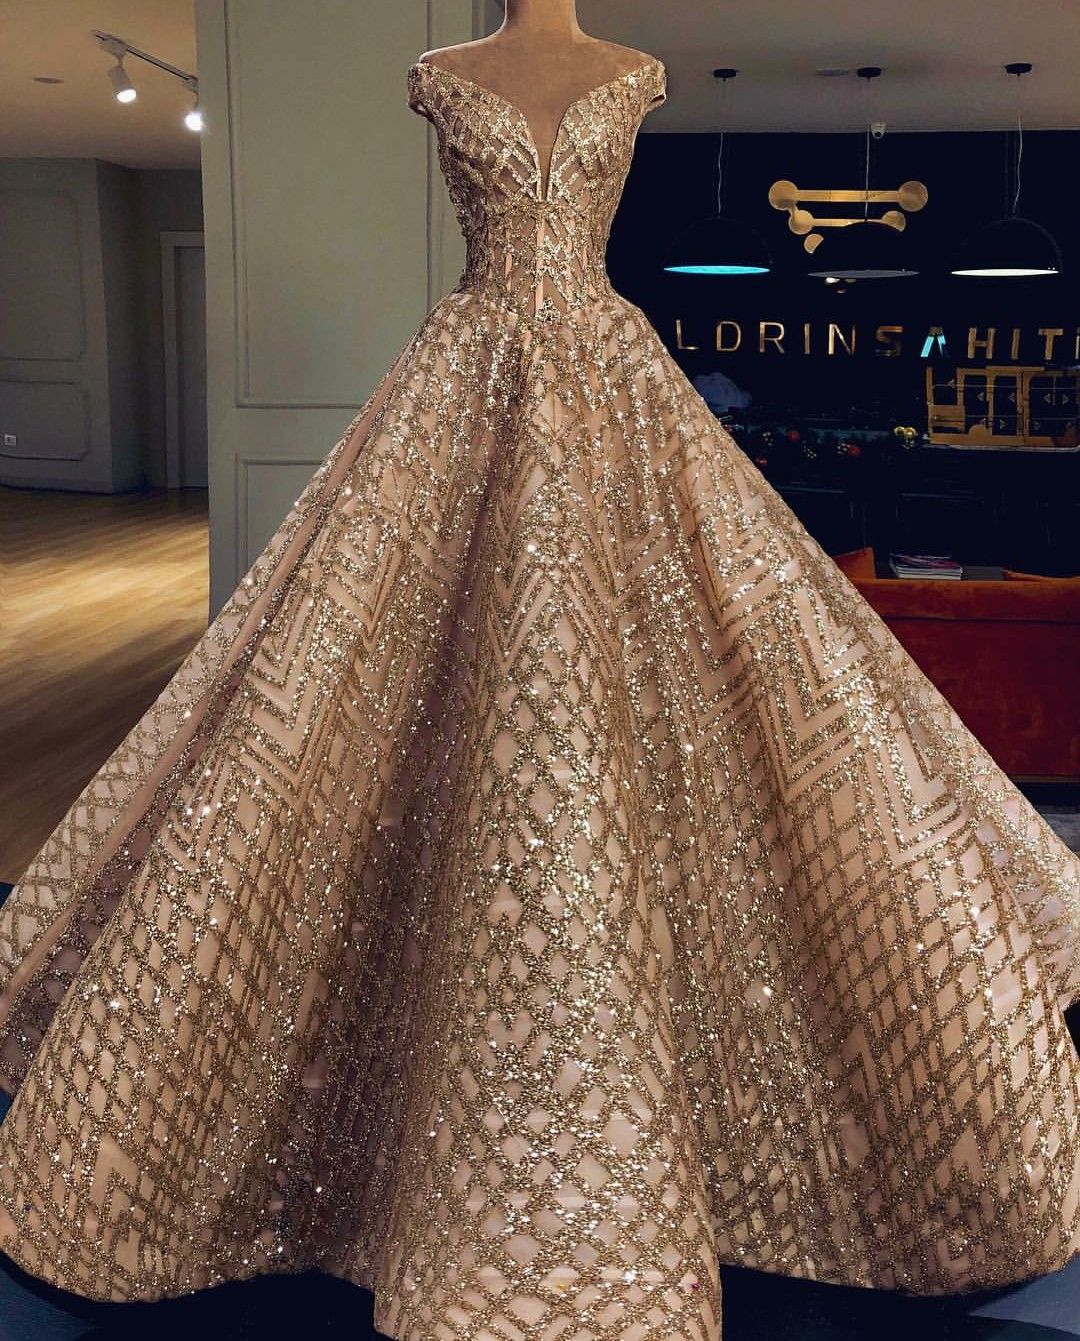 Dresses to wear to a wedding reception  Valdrin Sahiti  Formal dress  Pinterest  Gowns Prom and Clothes